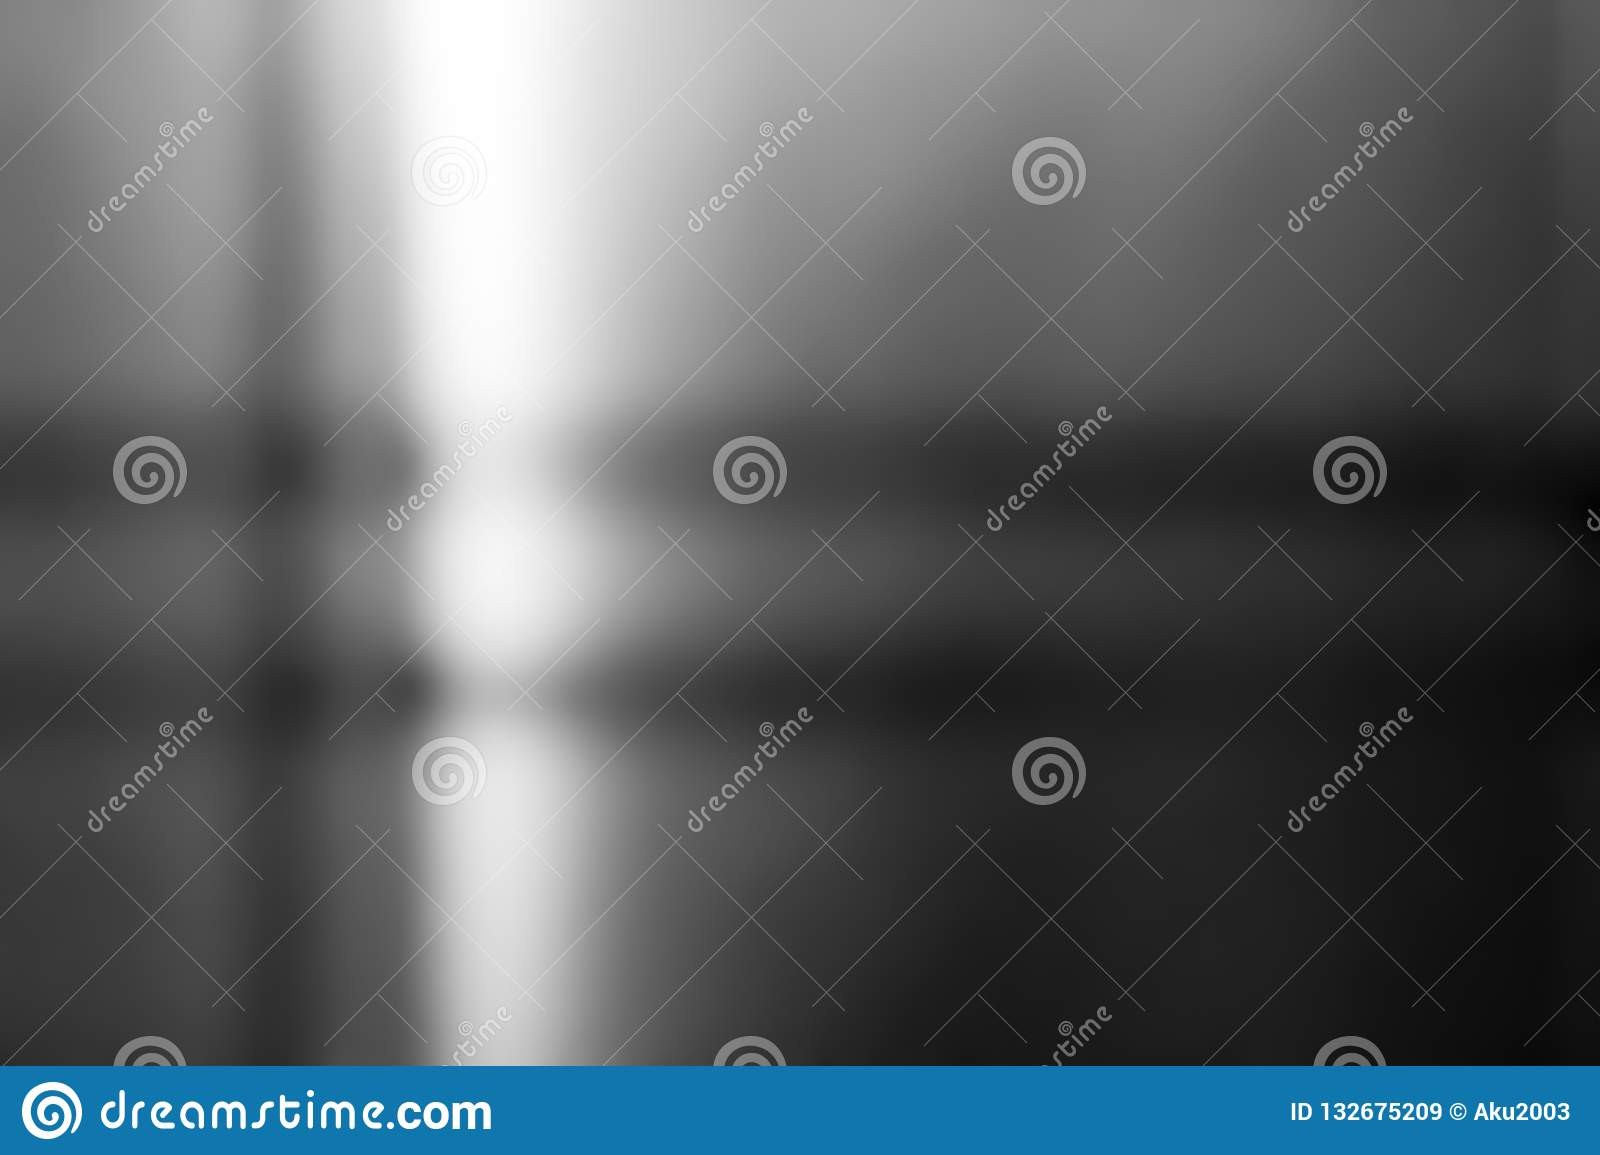 Metal stainless steel surface background or aluminum brushed silver metal with reflection.